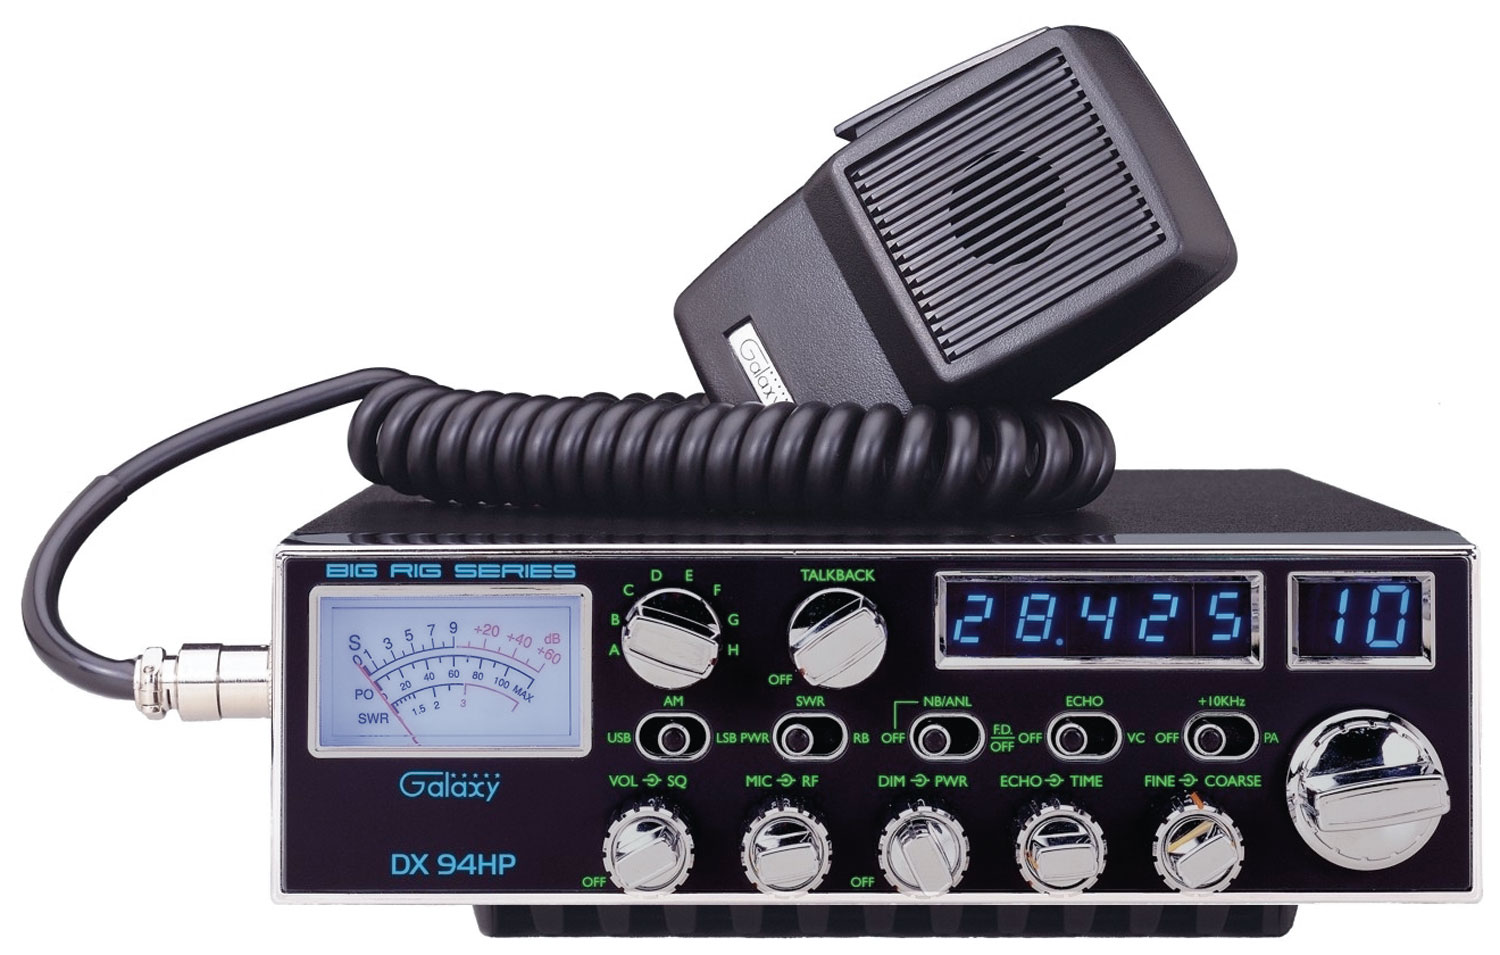 DX94HP - Galaxy High Powered 10 Meter Mobile Radio